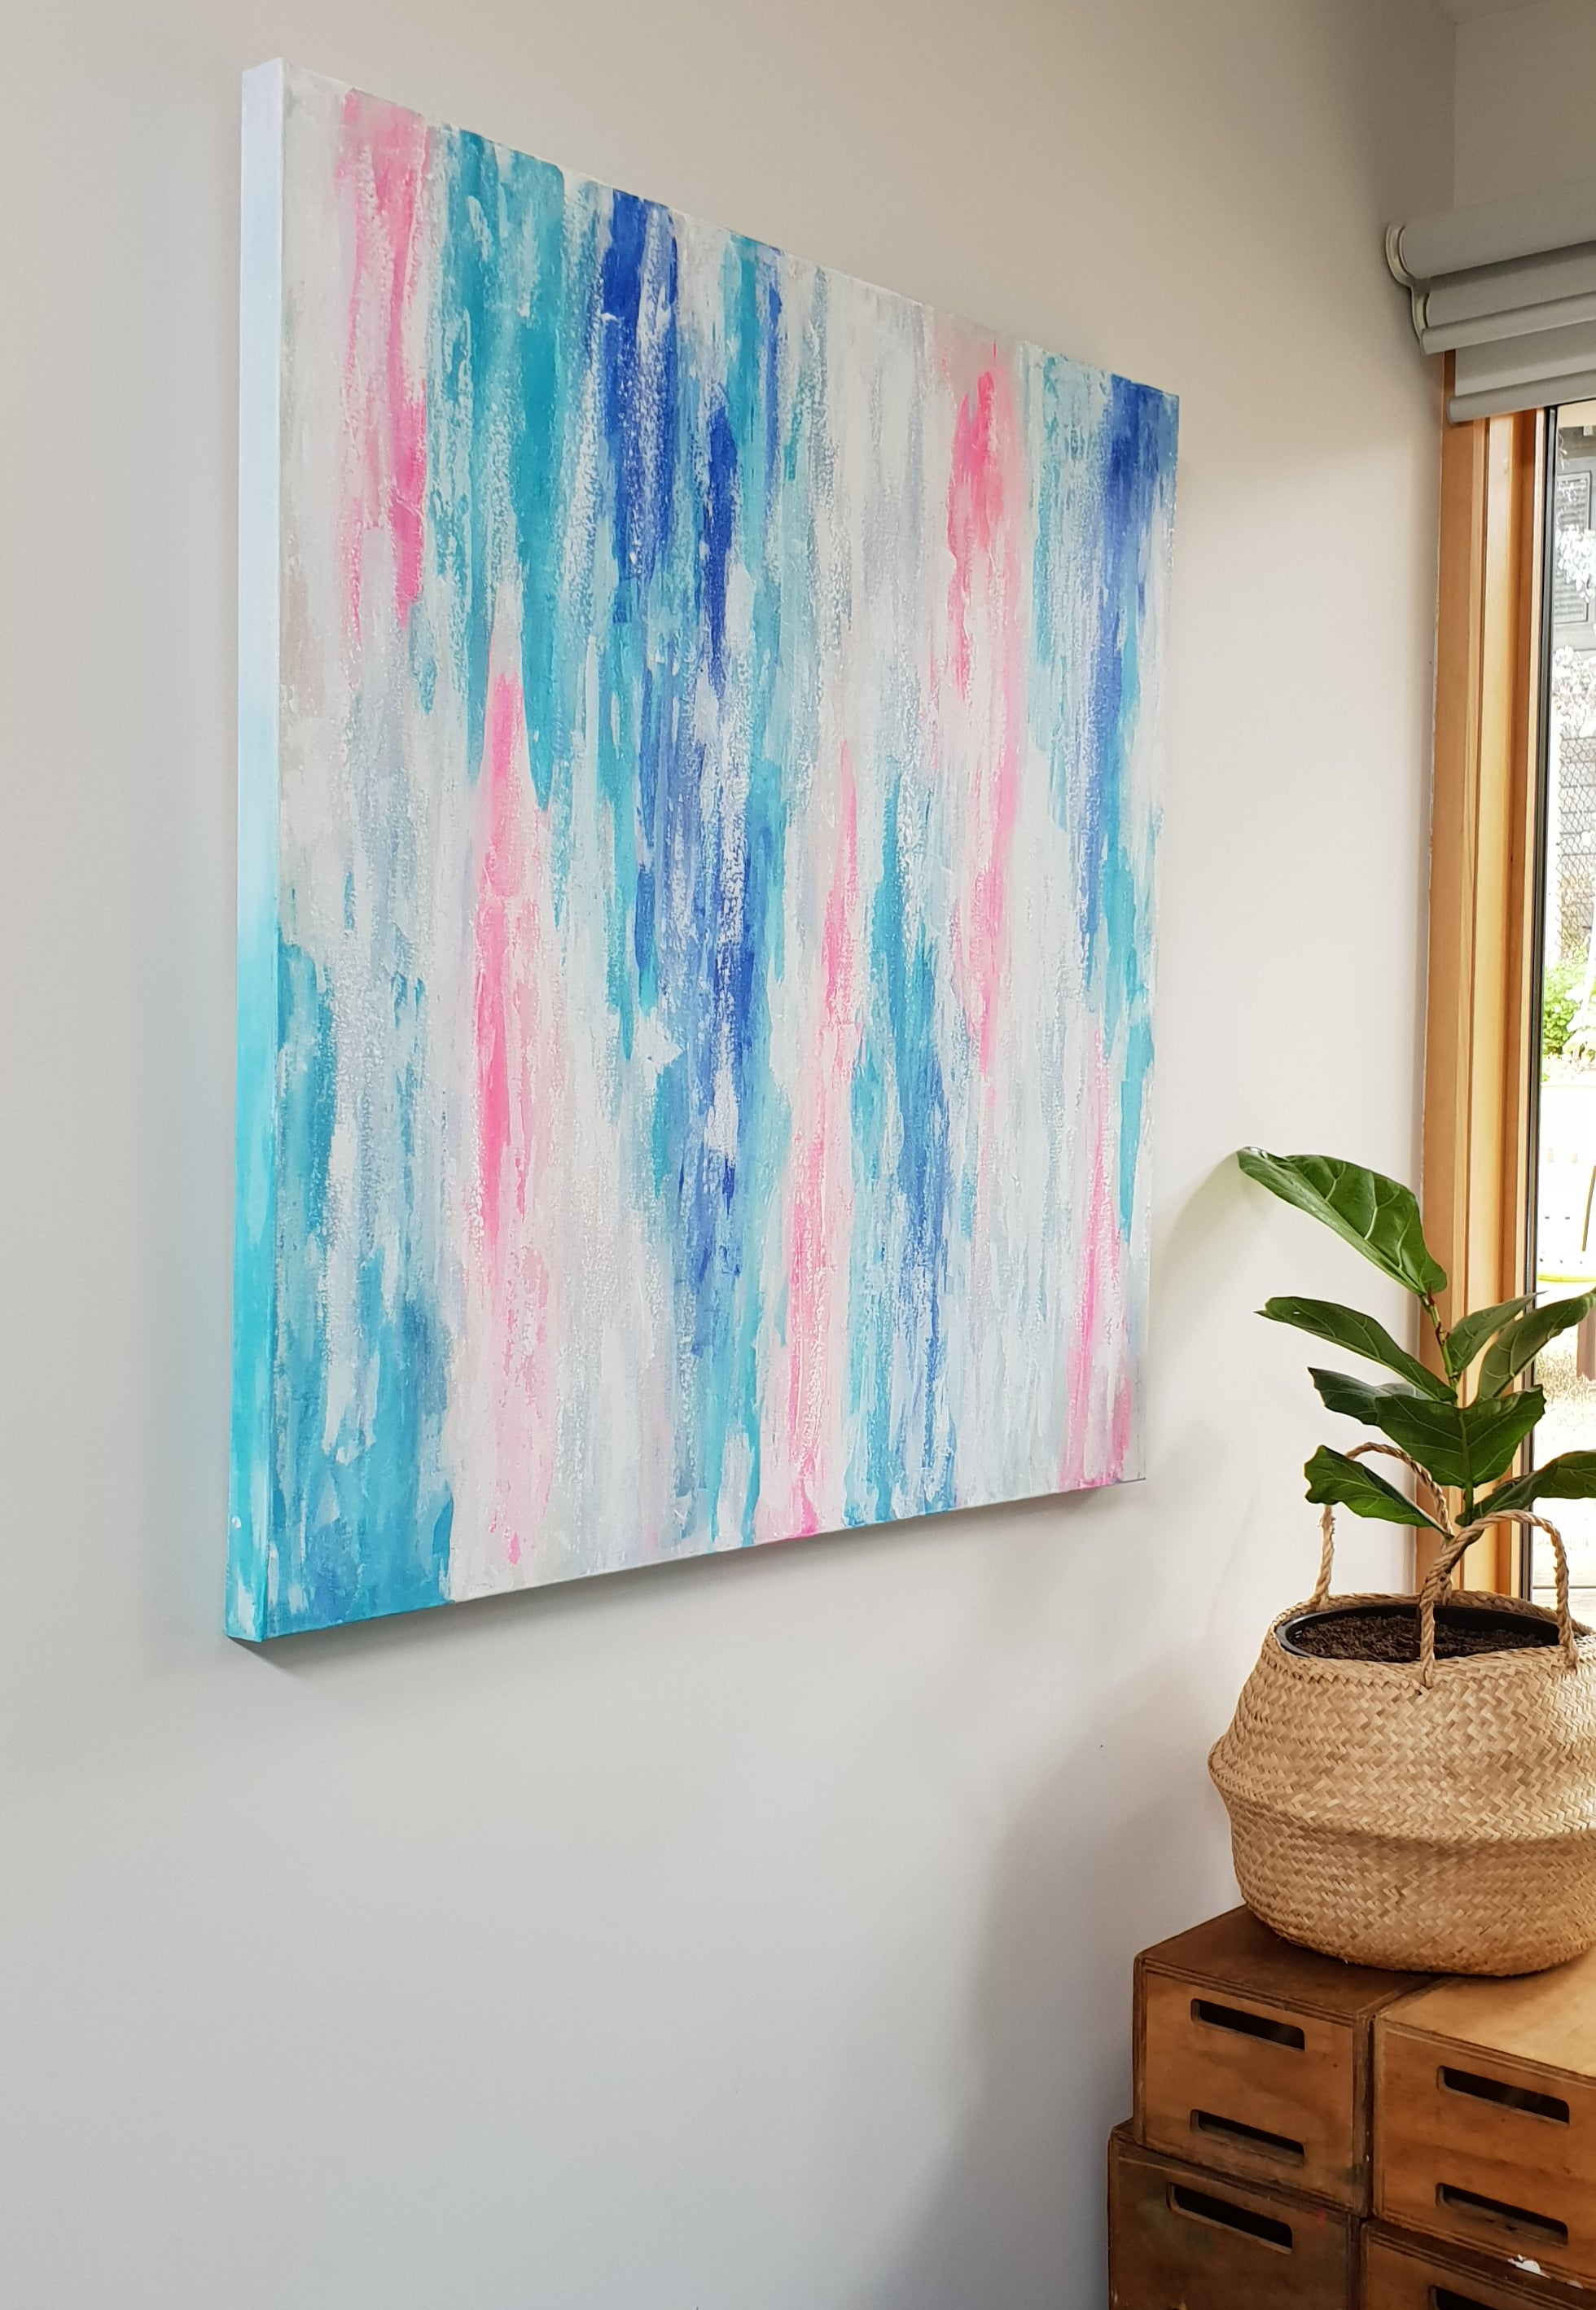 Abstract painting by Jacinta Payne, Melbourne